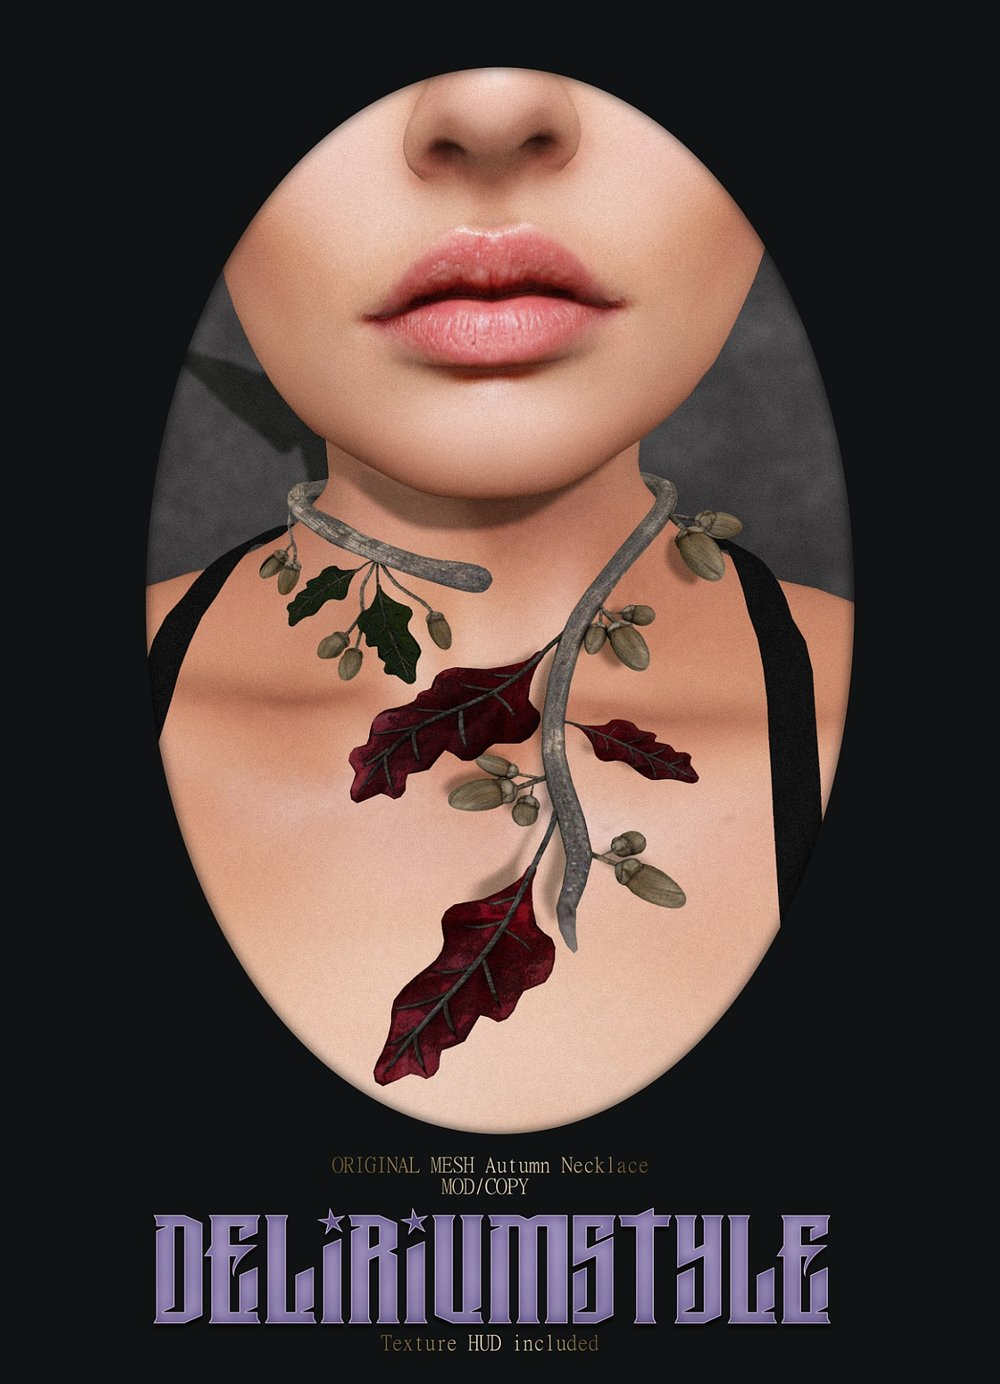 Autumn Necklace Poster.jpg